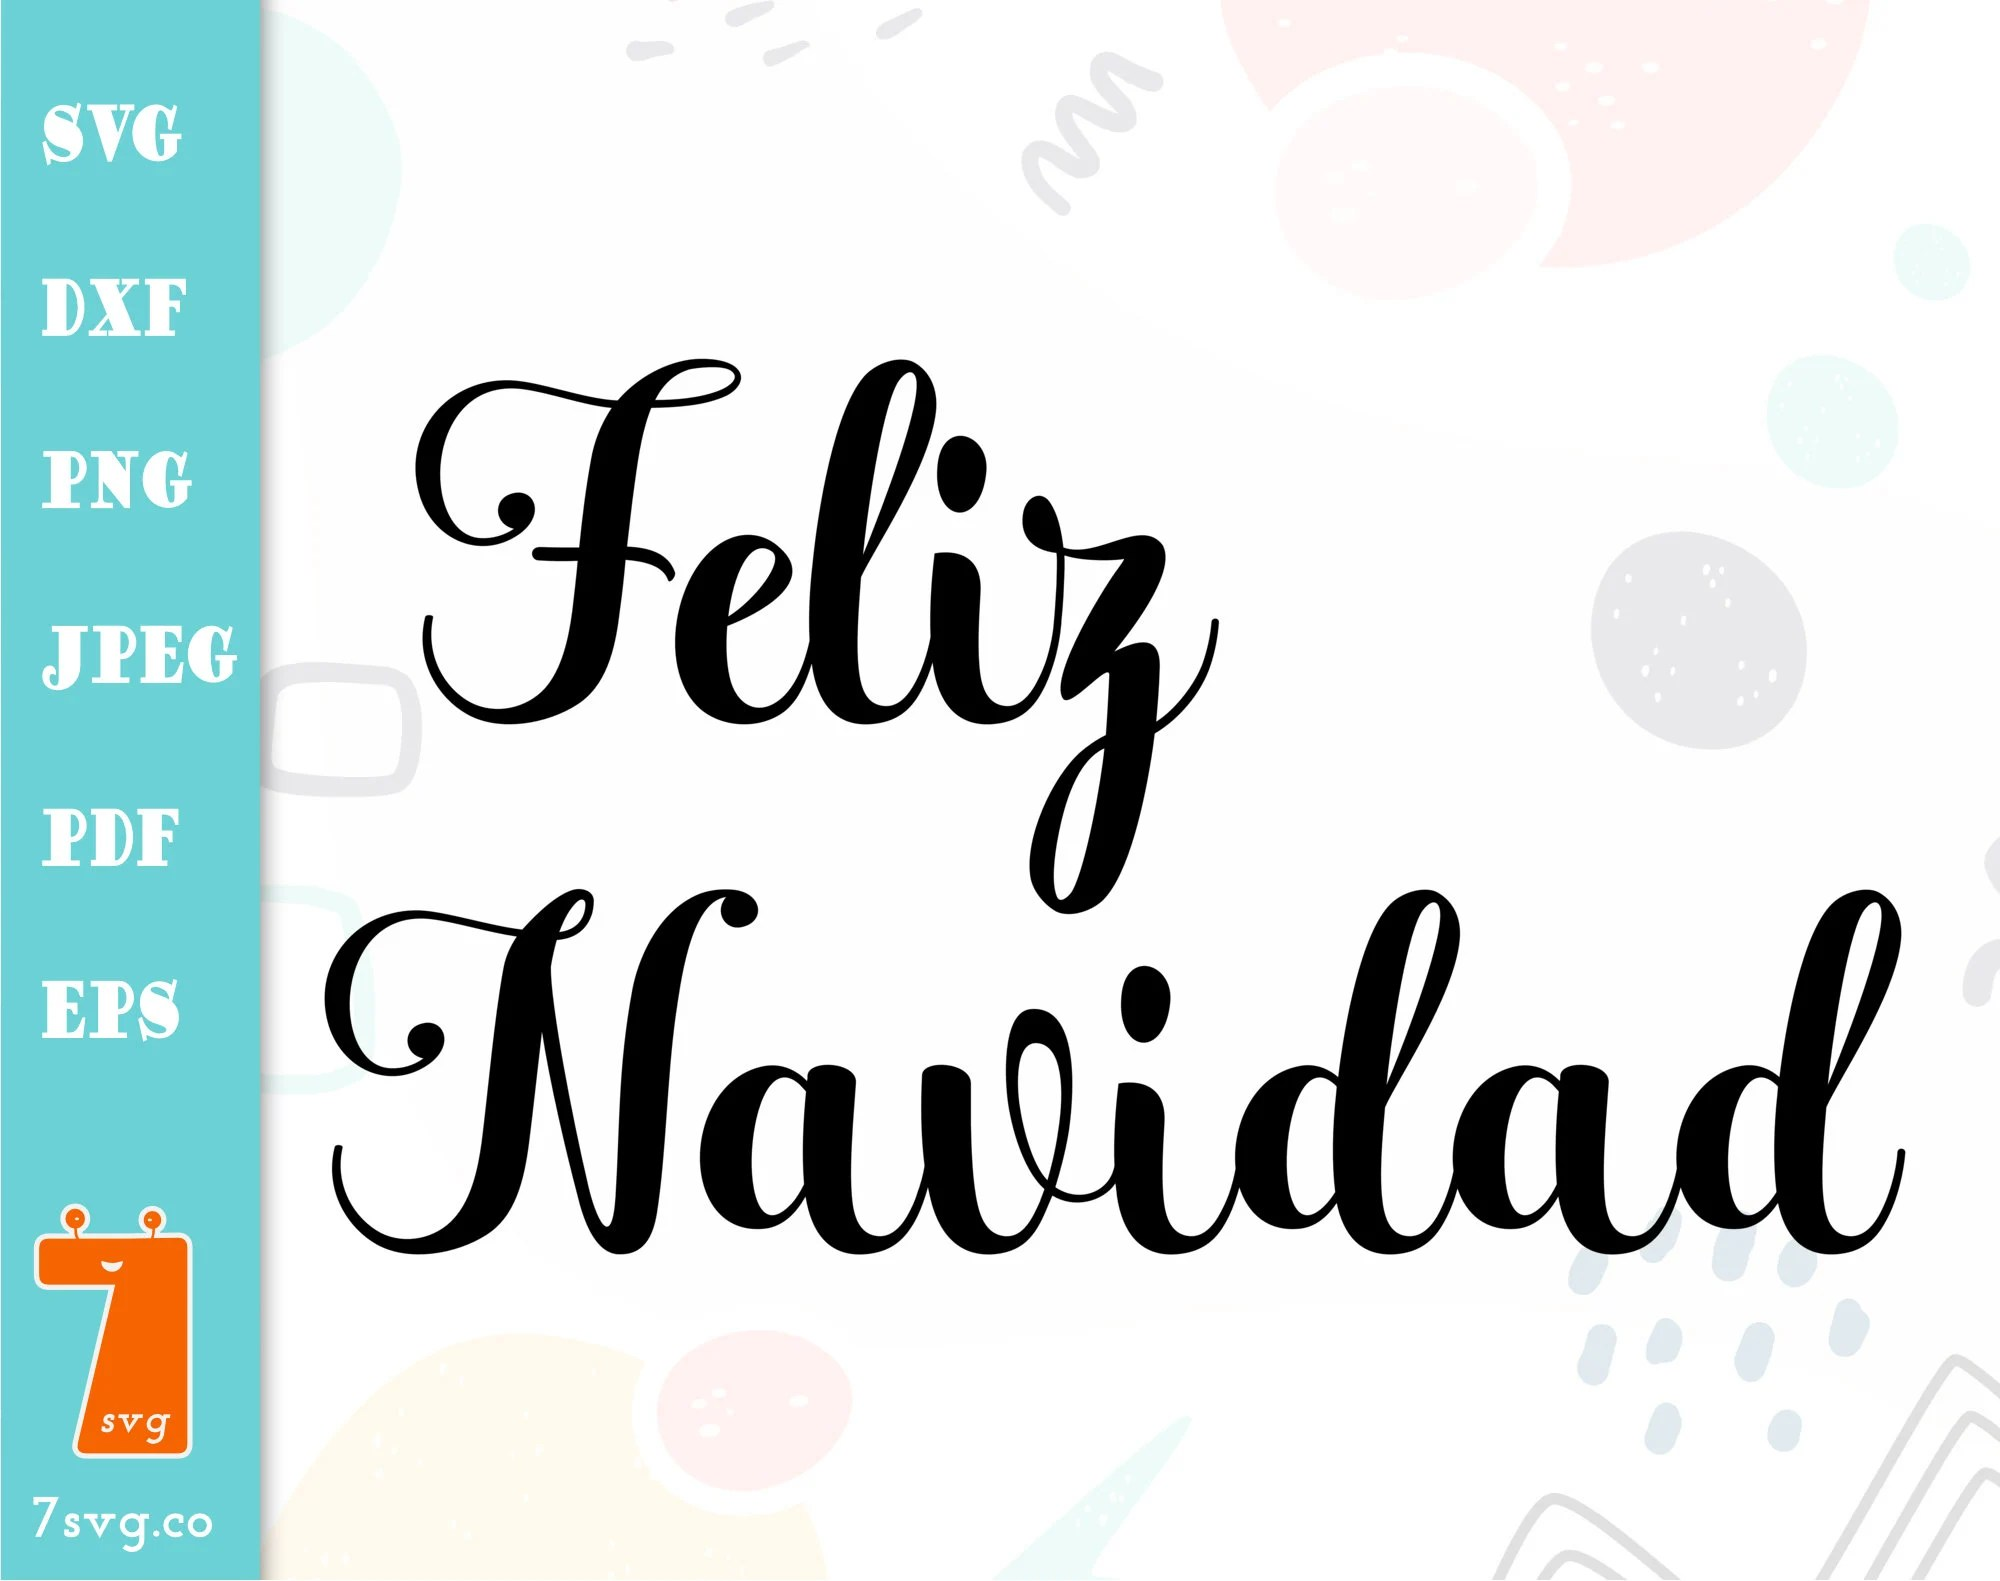 If you are looking for 12 days of christmas svg you've come to the right place. Cricut File Jpg Png Cutting File Cricut And Silhouette Spanish Christmas Hand Lettered Feliz Navidad Svg Merry Christmas Digital Drawing Illustration Safarni Org